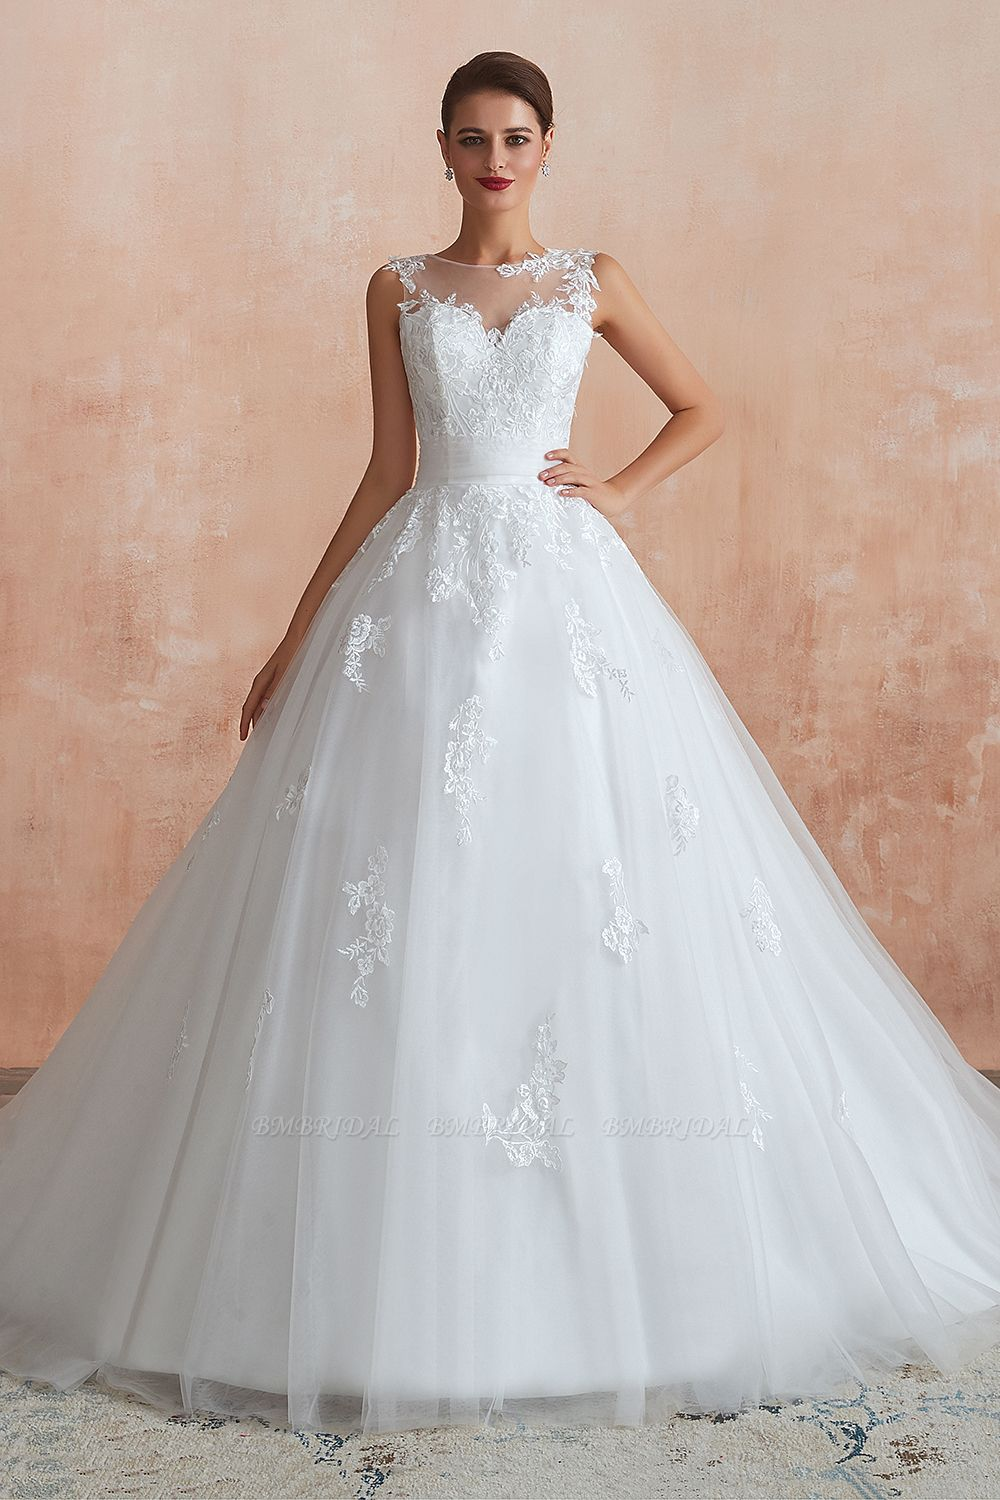 Affordable Sweetheart Sleeveless White Lace Wedding Dresses Online